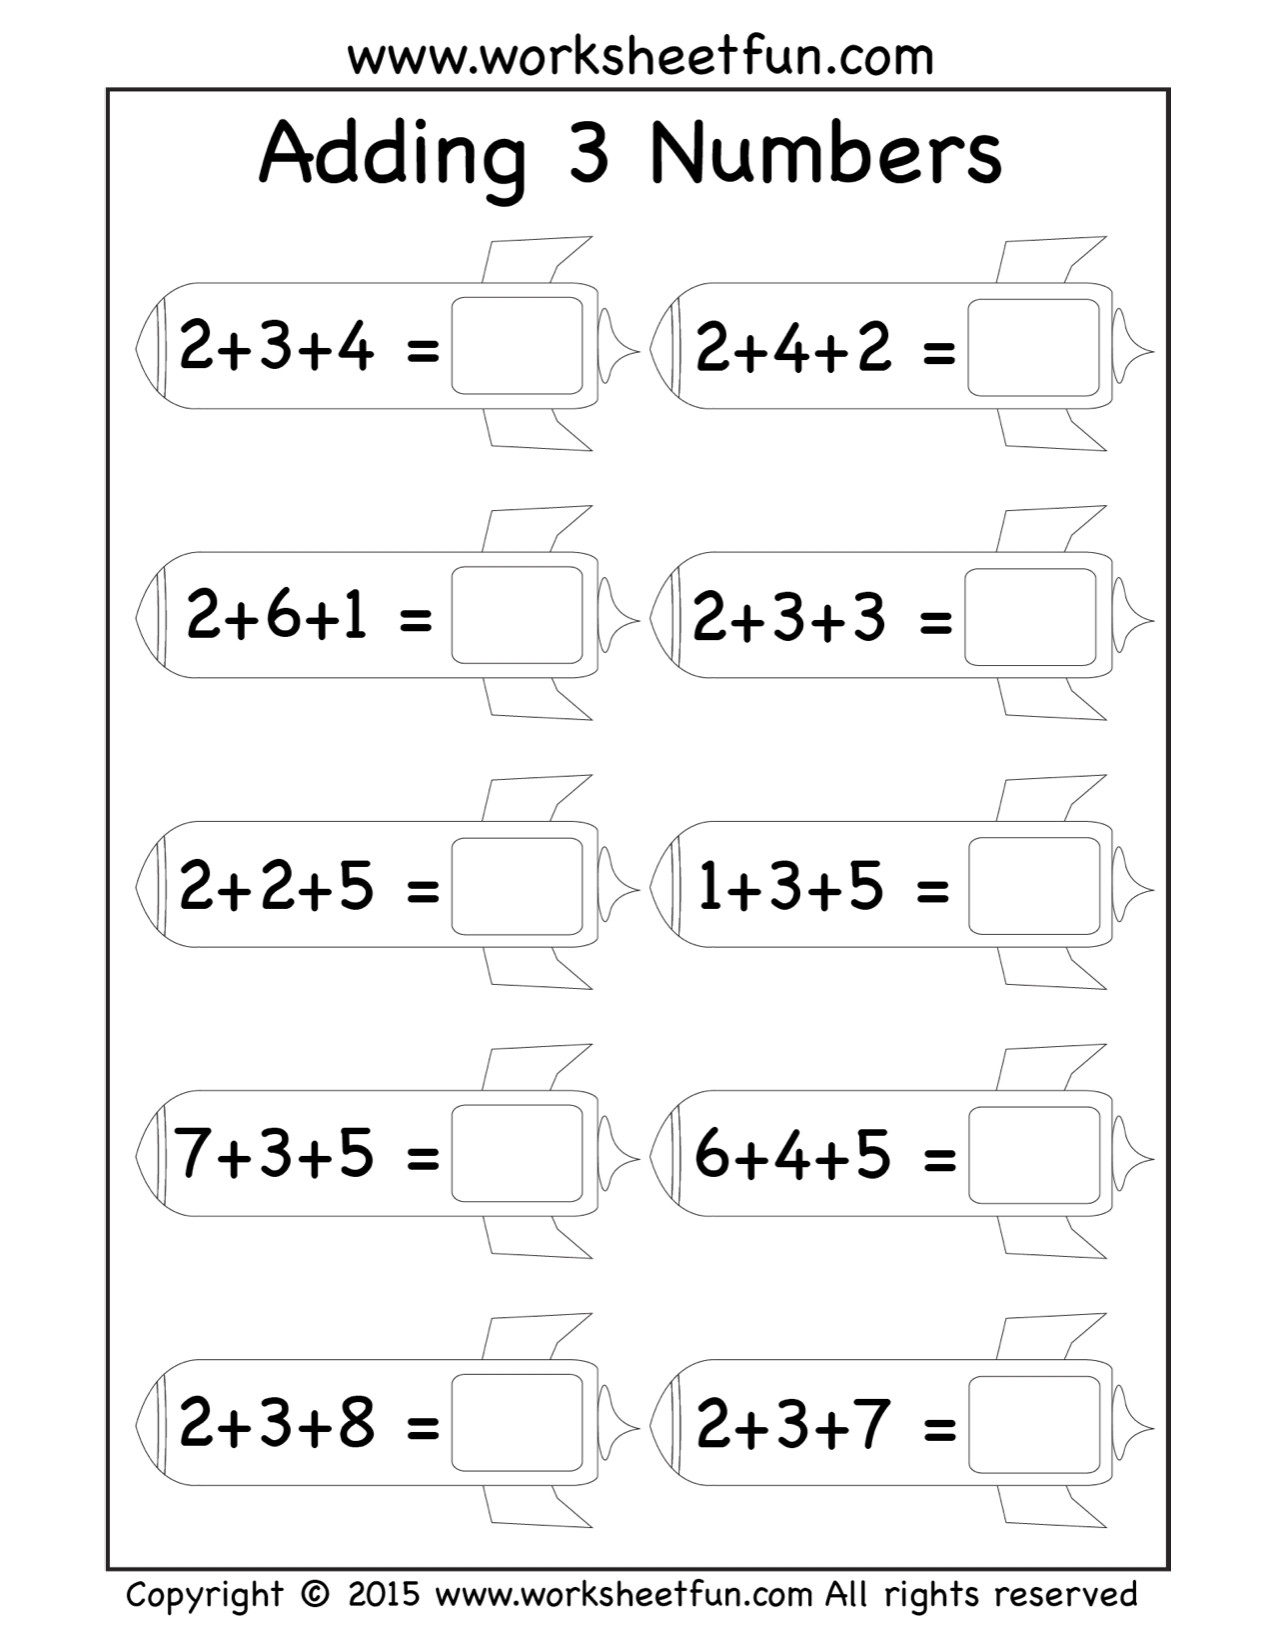 hight resolution of 5 Free Math Worksheets First Grade 1 Addition Add 2 Digit 1 Digit Numbers  Missing Addend No Regrouping - AMP